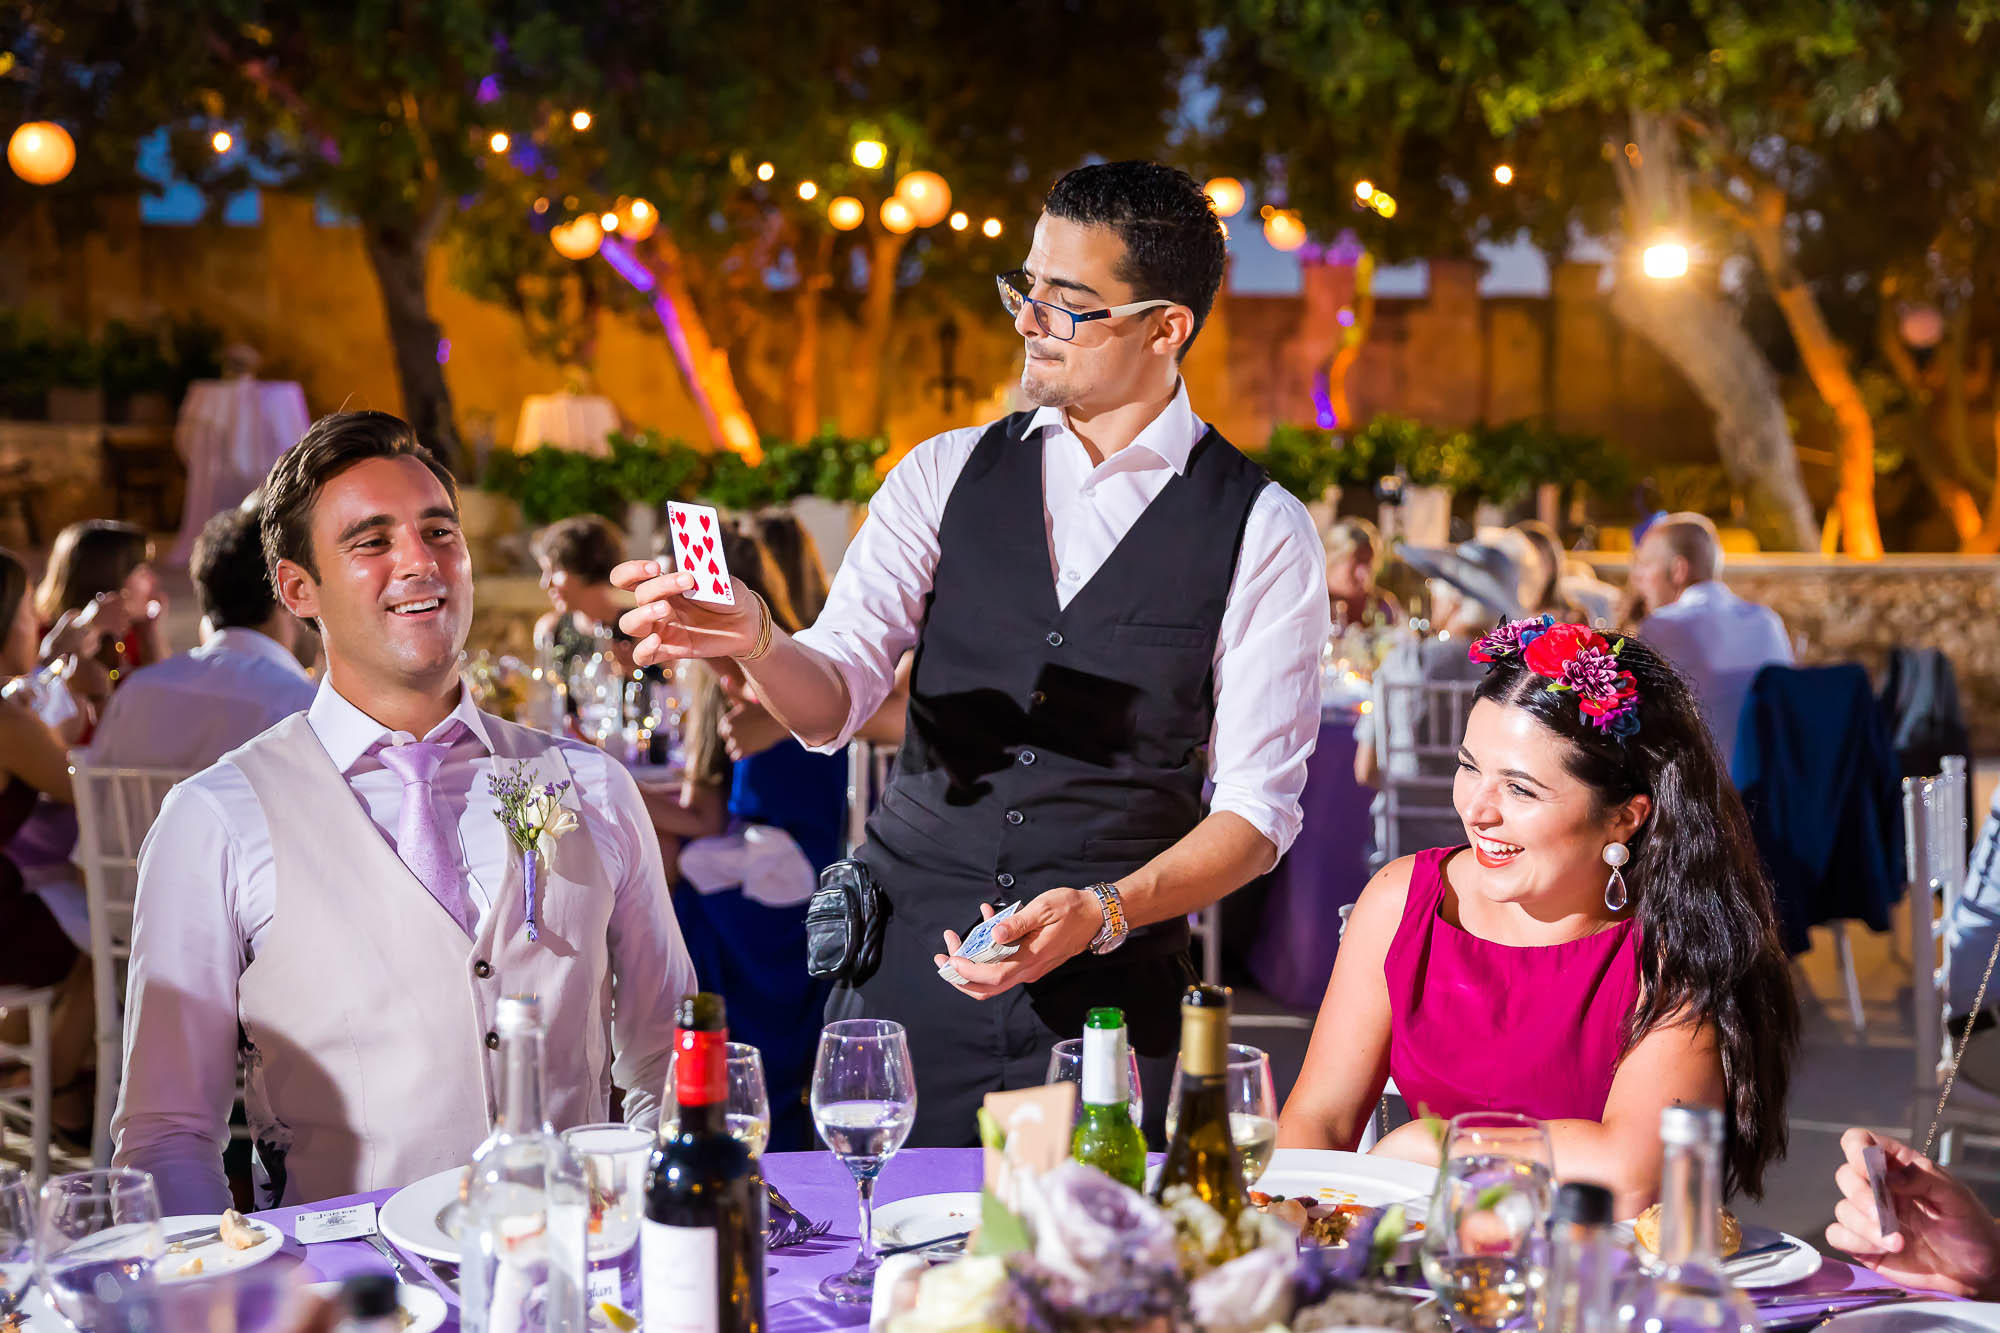 Wedding reception magic with a magician. Photo by Elliot Nichol Photography.